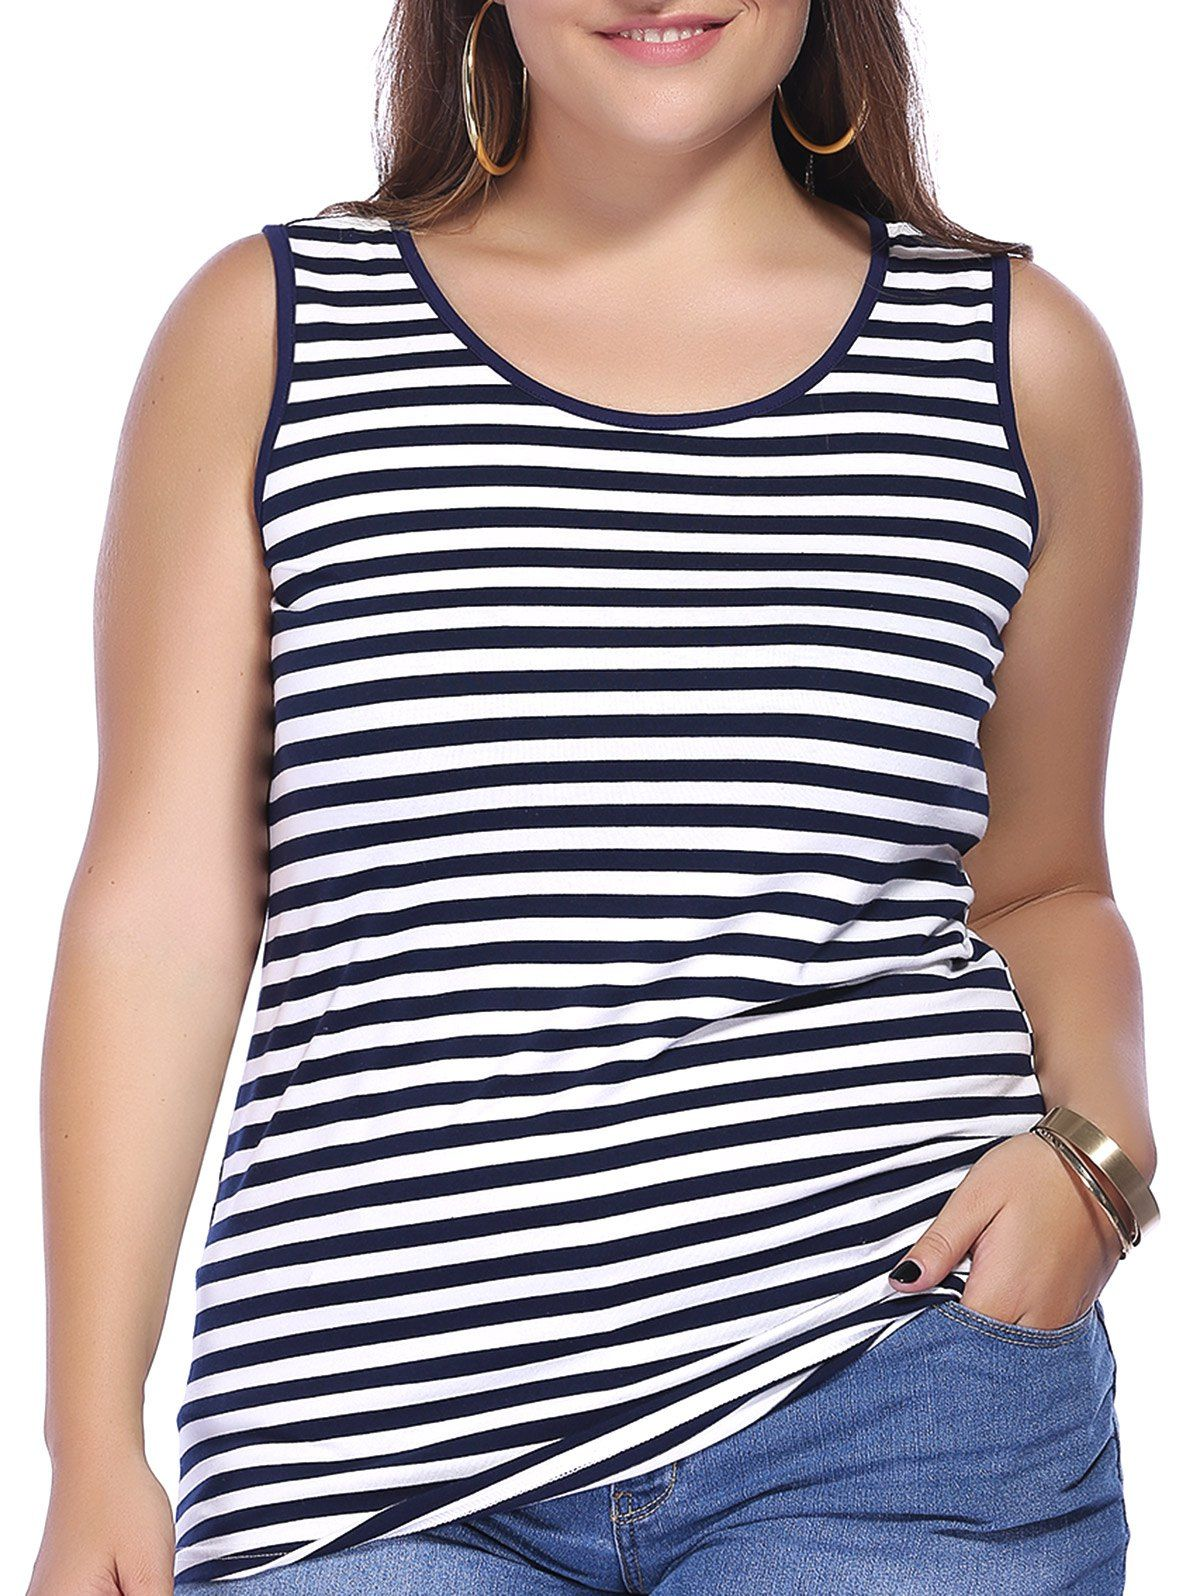 chic plus size scoop neck striped tank top for women | striped